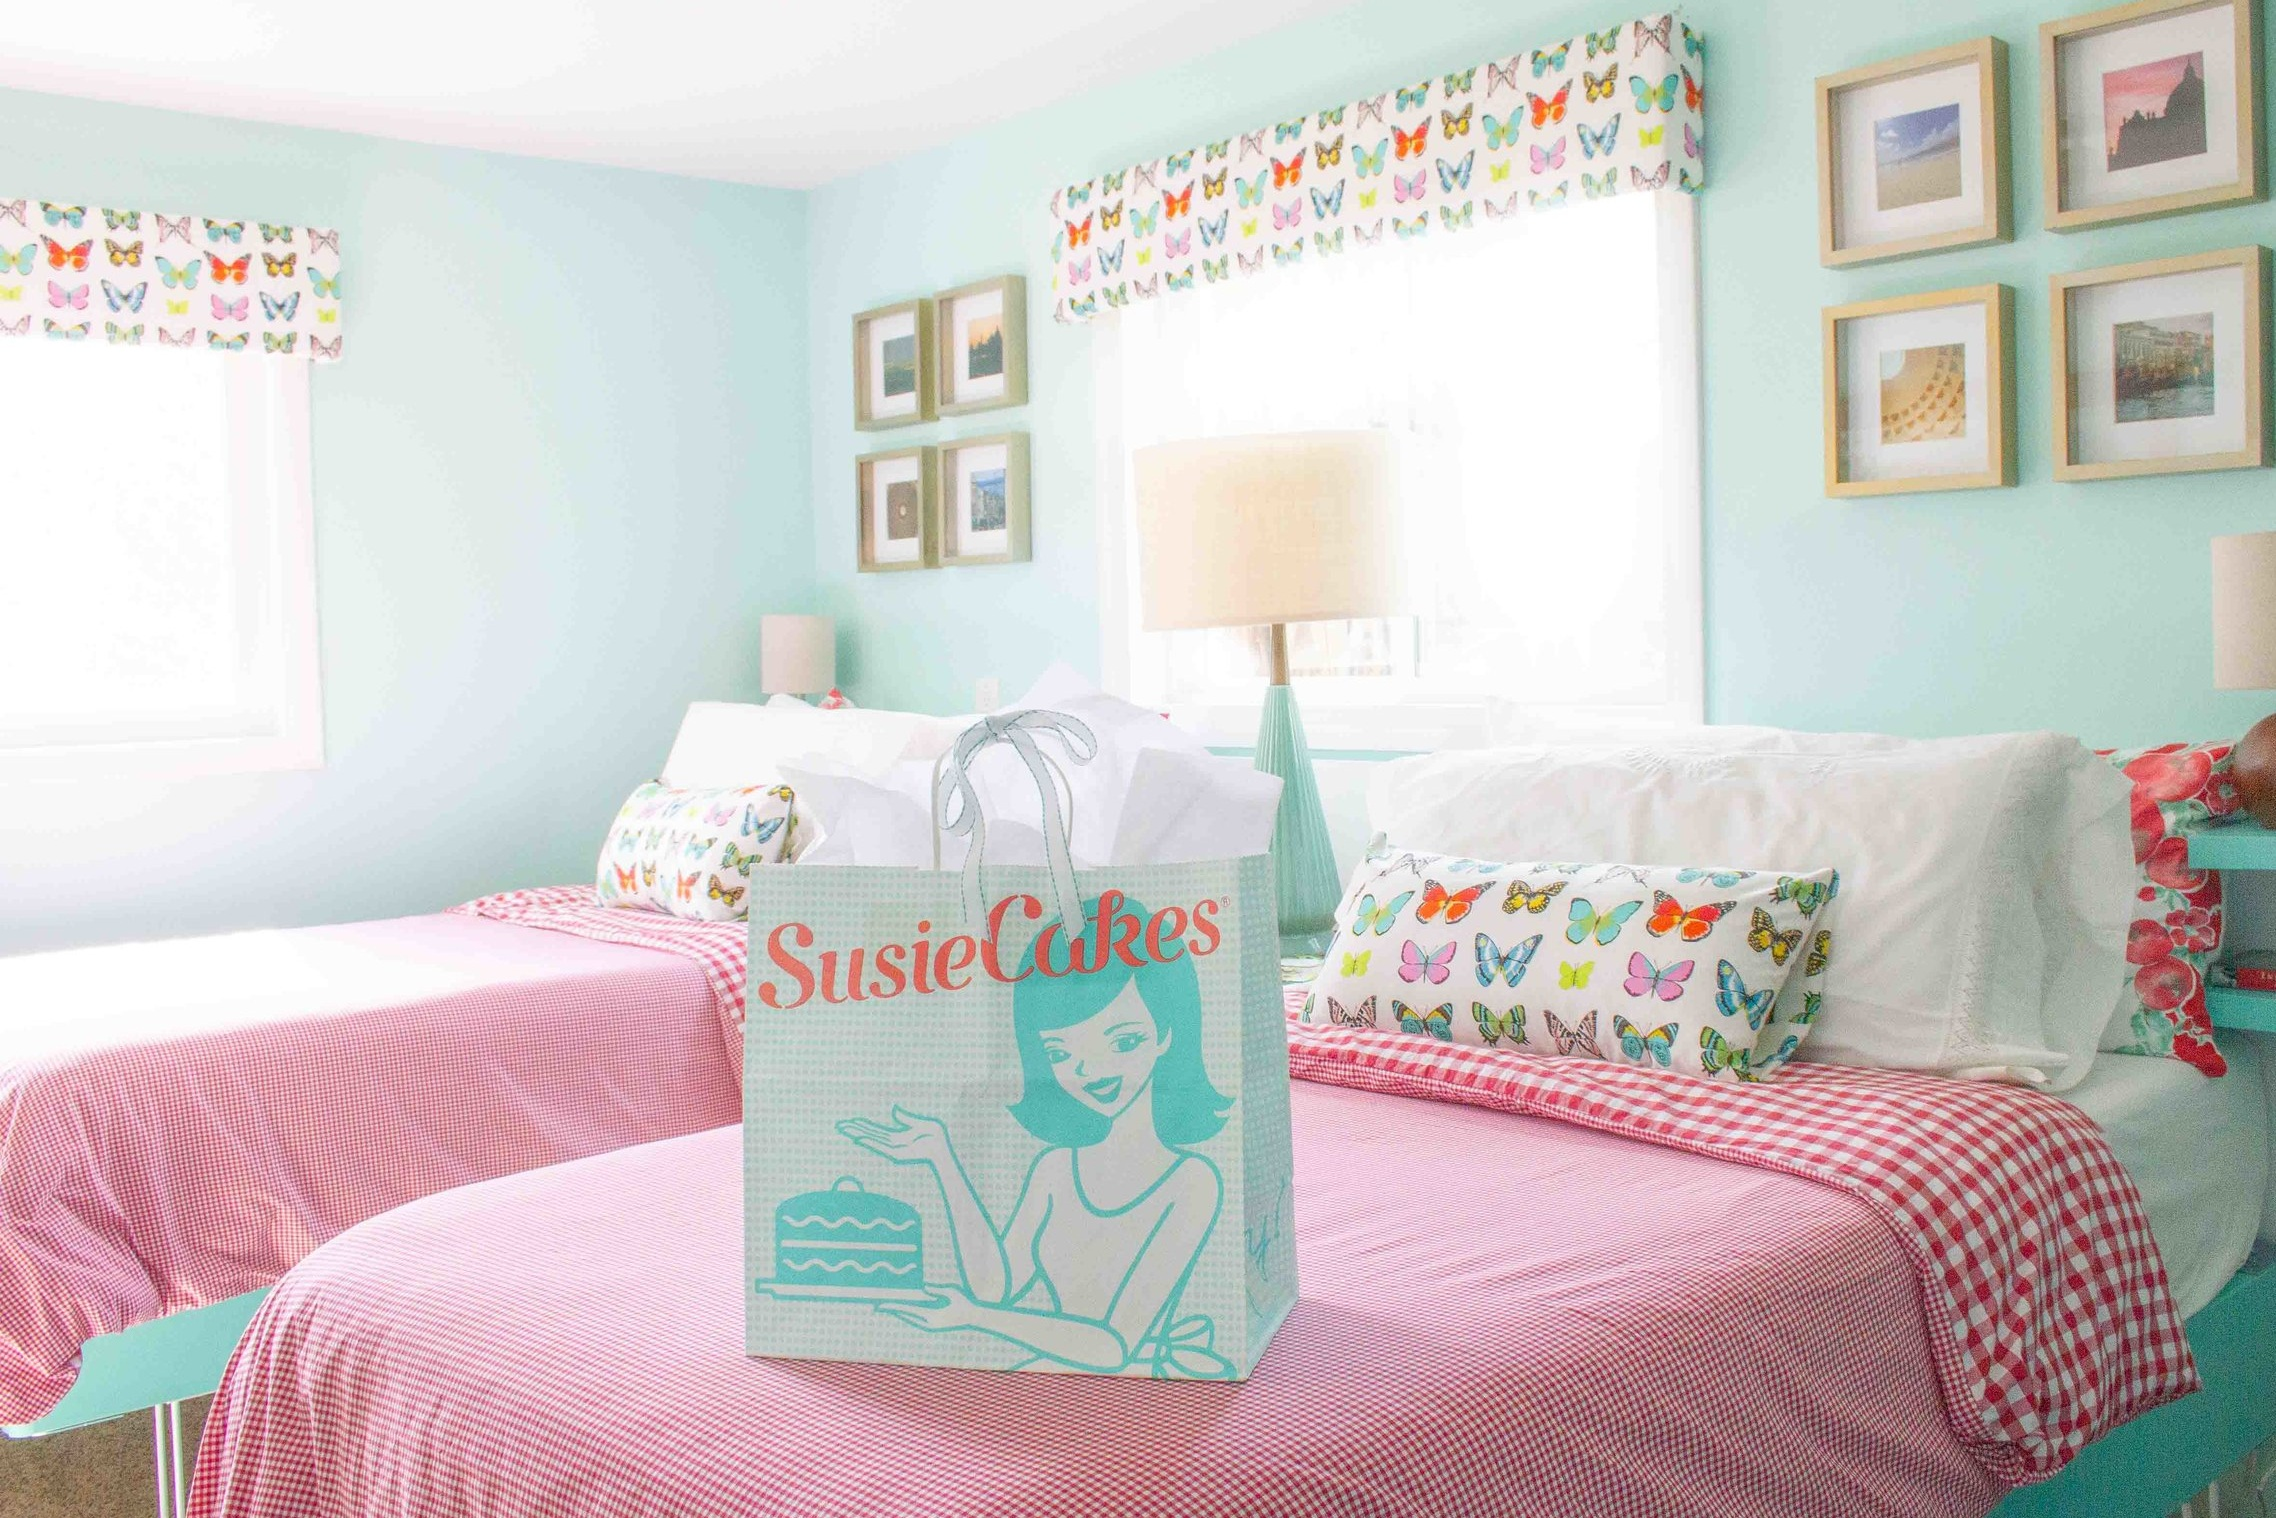 """When I described my vision for a retro-inspired room with a red and turquoise color scheme, my husband immediately said, """"Oh, it will look like a  Susie Cakes  bag!"""" What do you think? Hopefully our Guest Room Refresh is as sweet as the treats at our favorite San Francisco bakery!"""